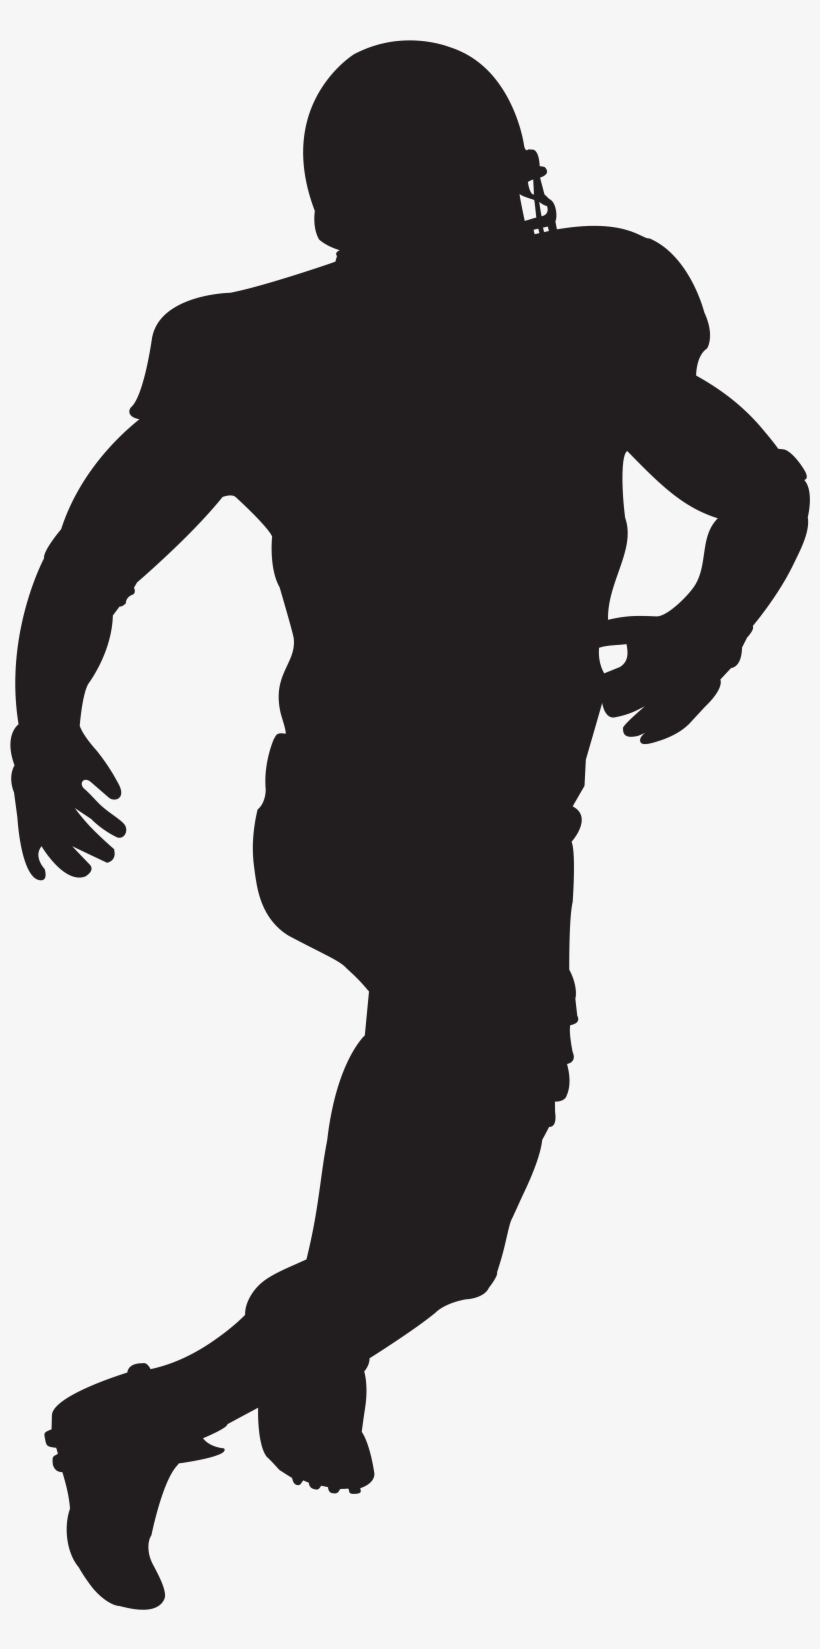 American Football Player Silhouette Clip Art Image American Football Player Clipart Transparent Png Image Transparent Png Free Download On Seekpng